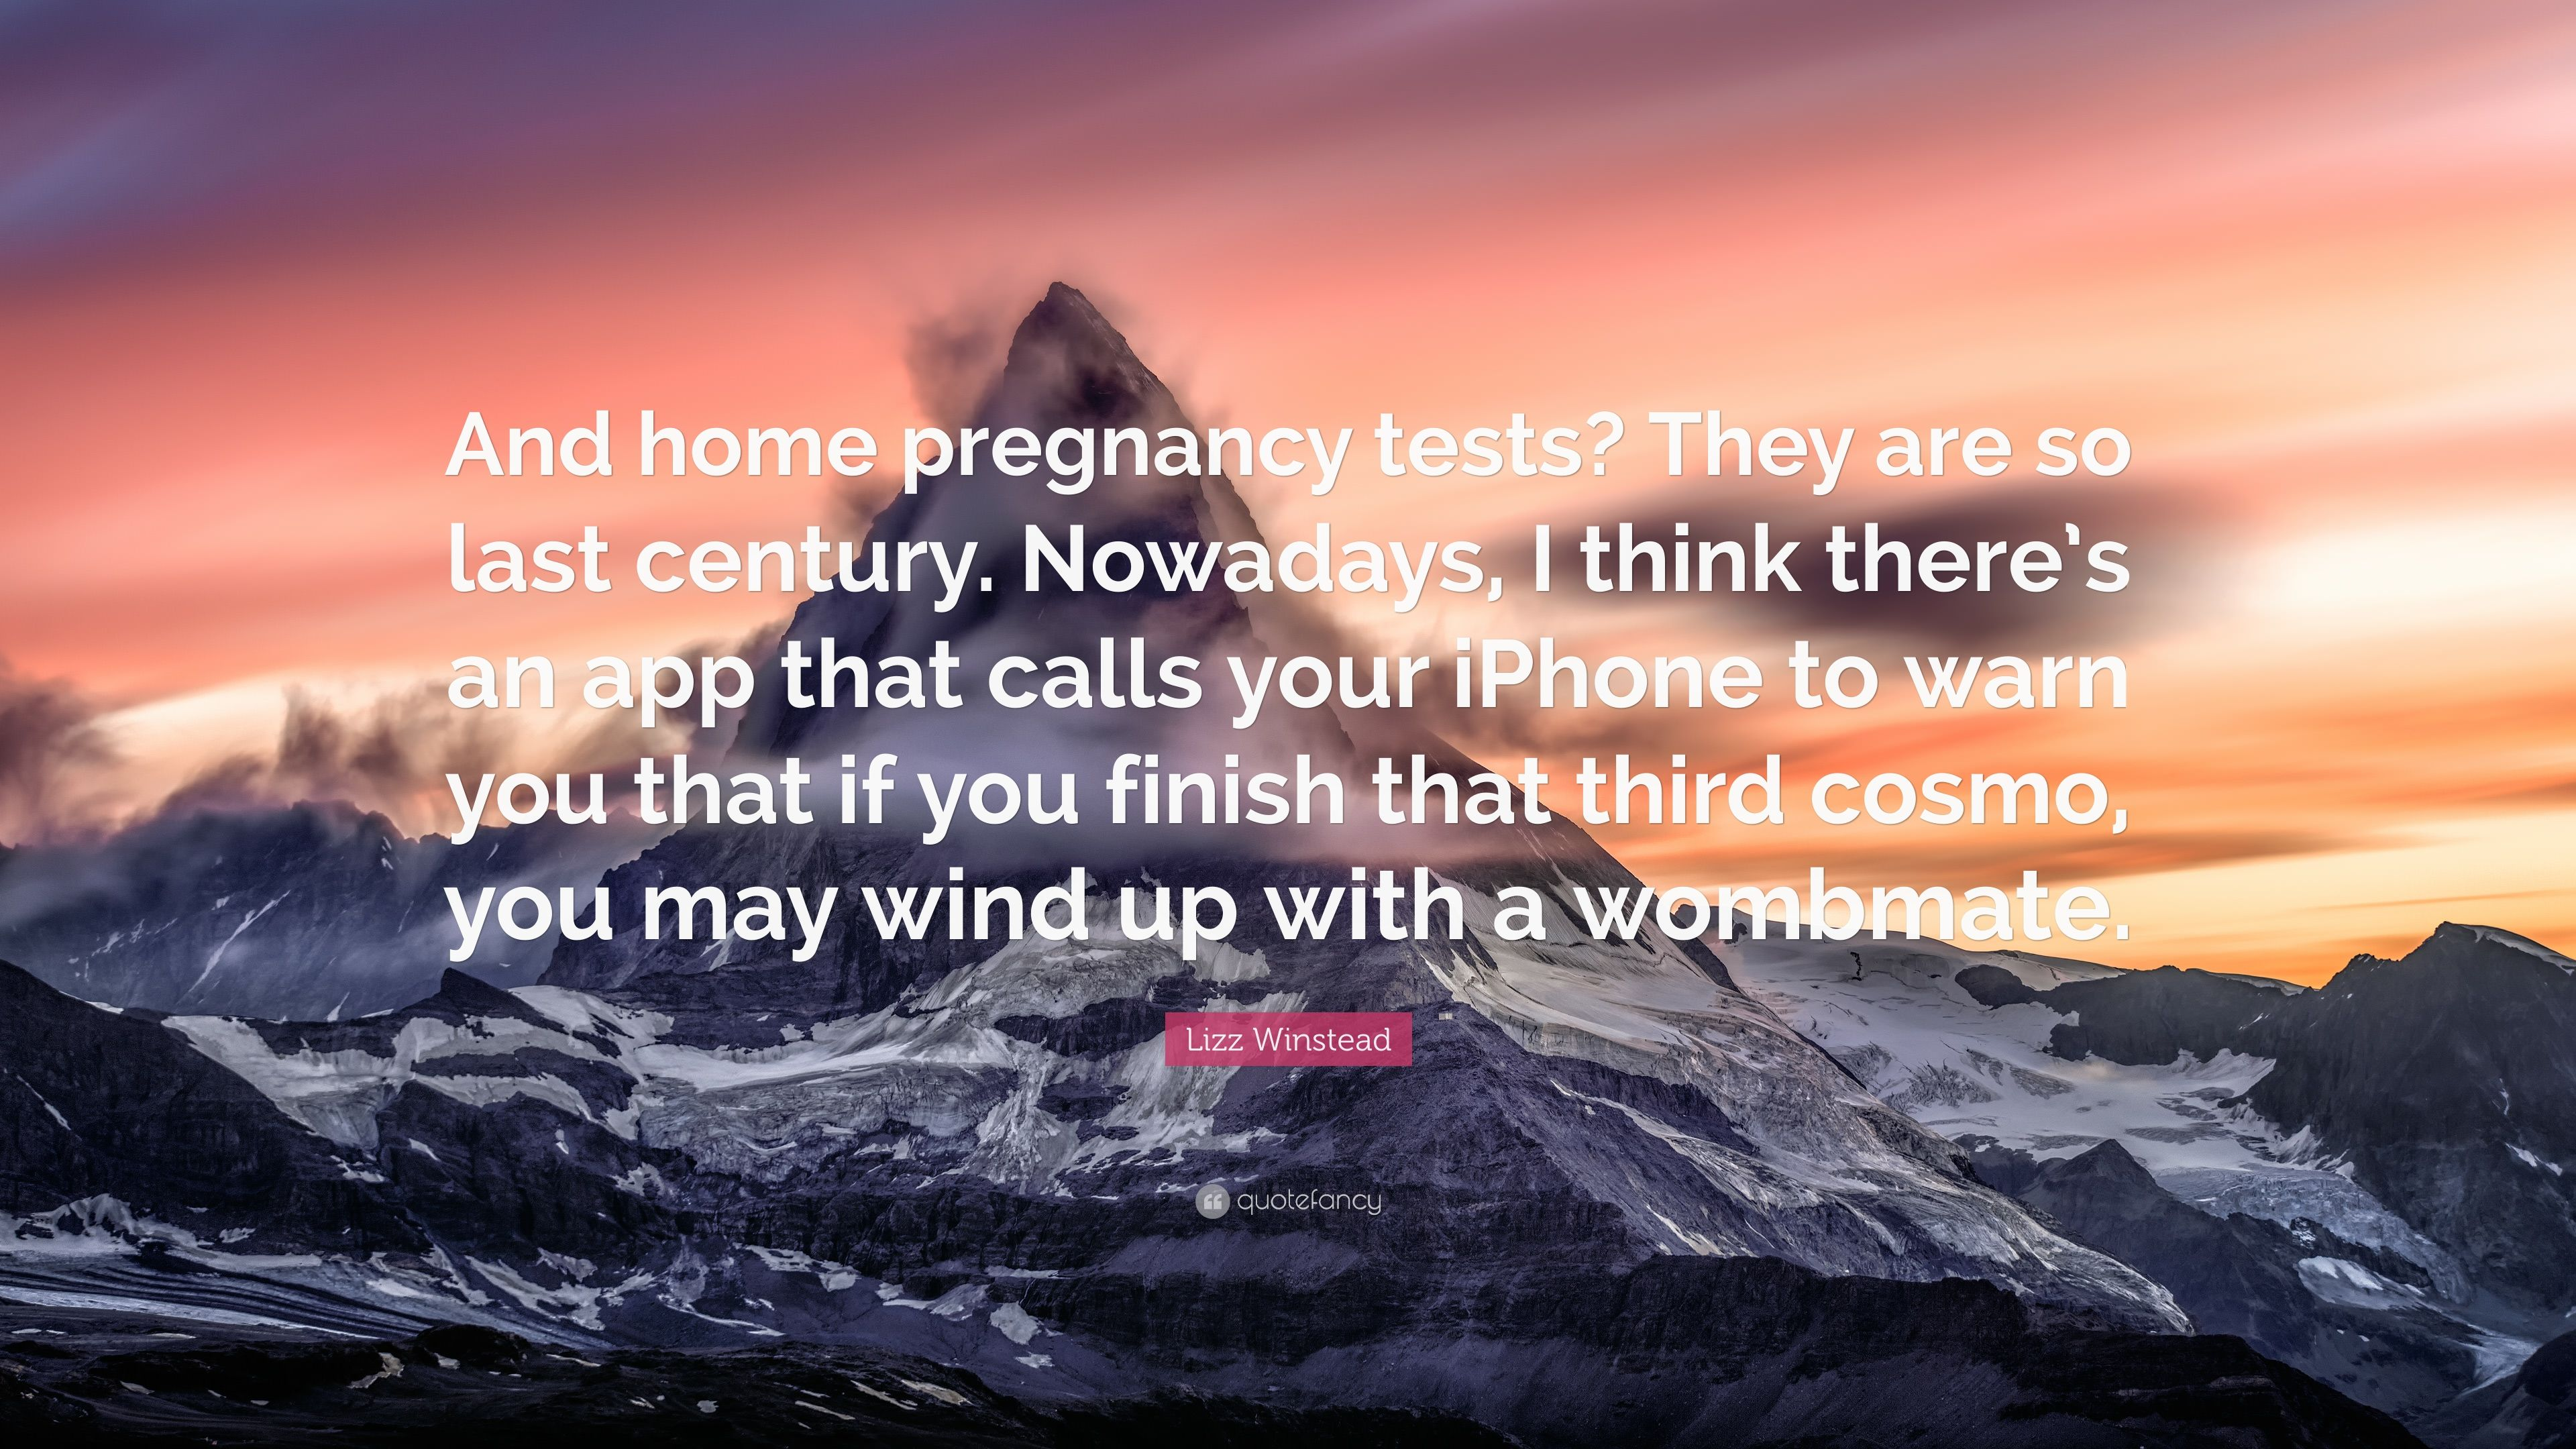 Lizz Winstead Quote And Home Pregnancy Tests They Are So Last Century Nowadays I Think There S An App That Calls Your Iphone To Warn You 7 Wallpapers Quotefancy